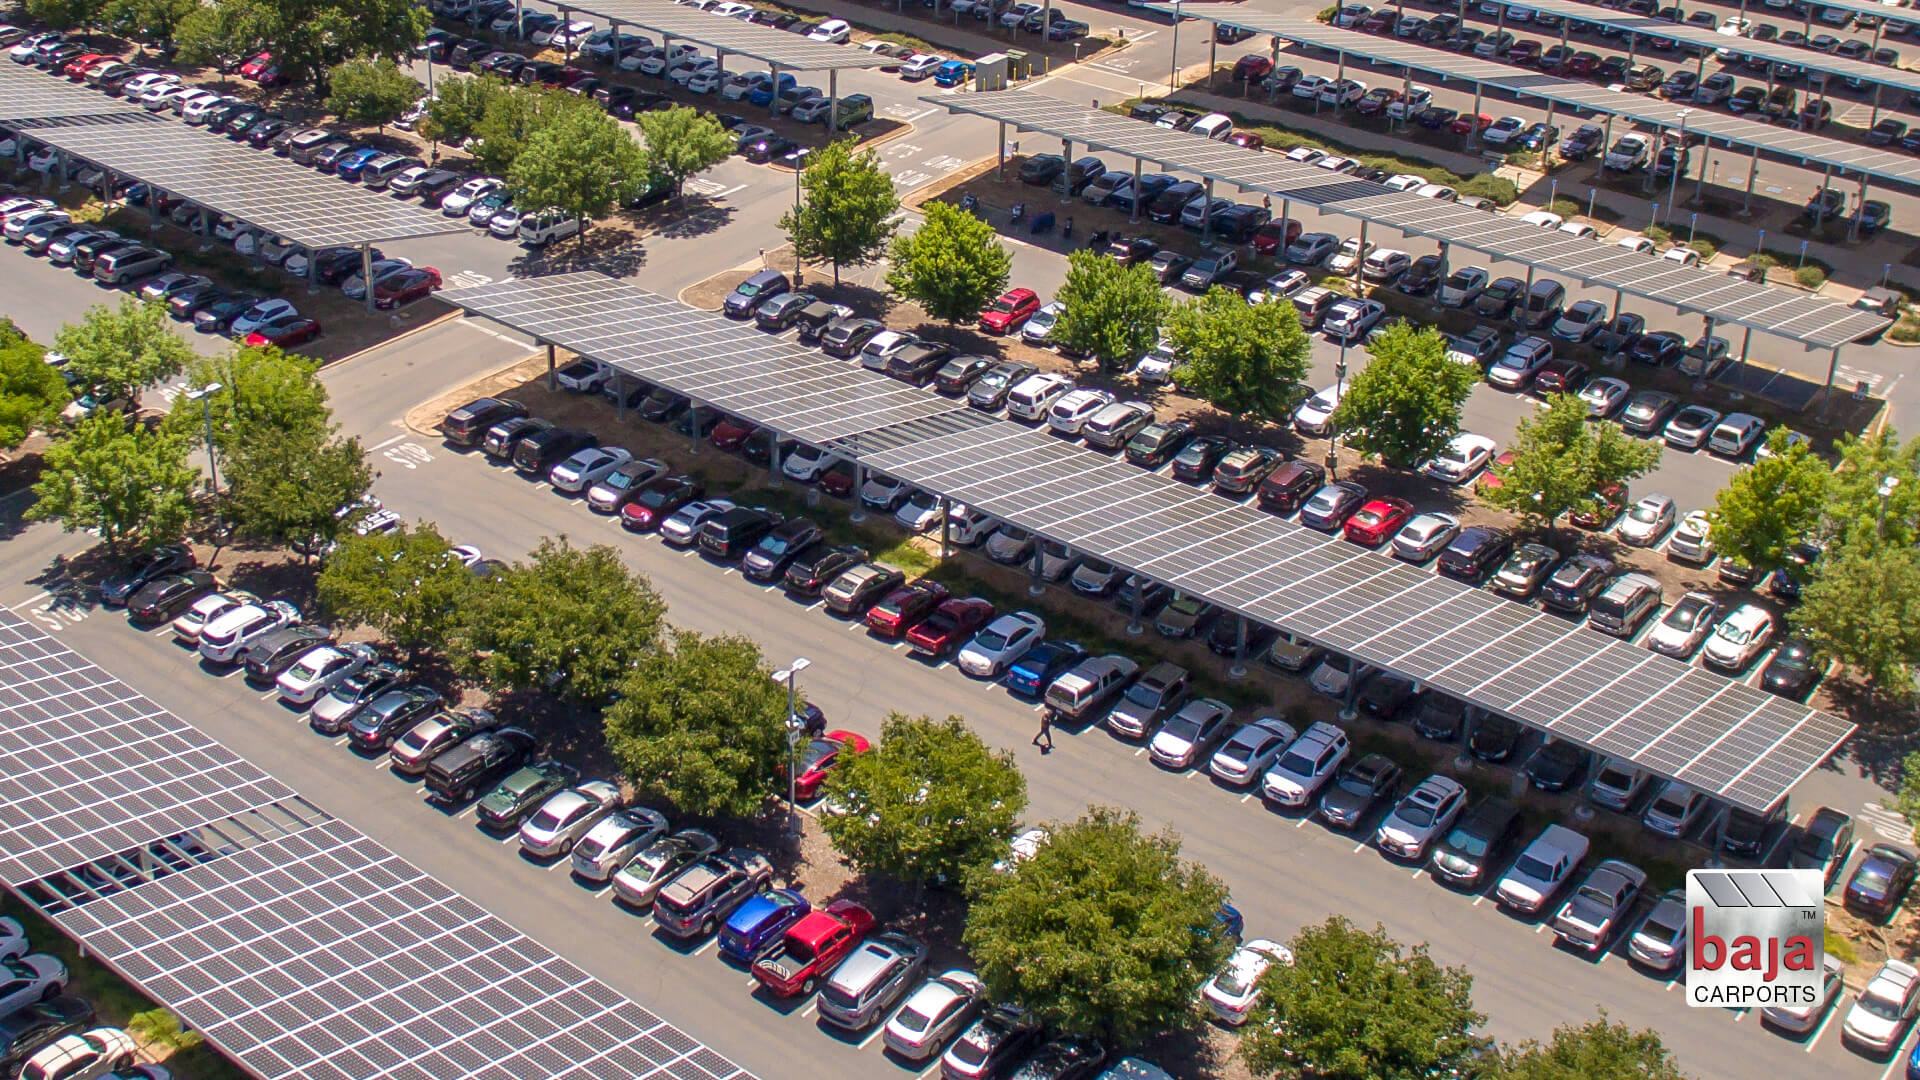 massive solar carport installation by baja carports photo is state of california franchise tax board